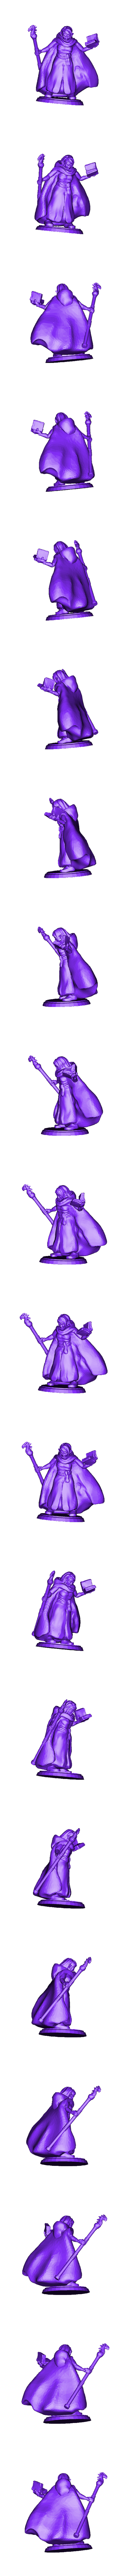 elf_mage_casting.stl Download free STL file Fantasy Mini Collection (multiple poses) • 3D printable object, stockto